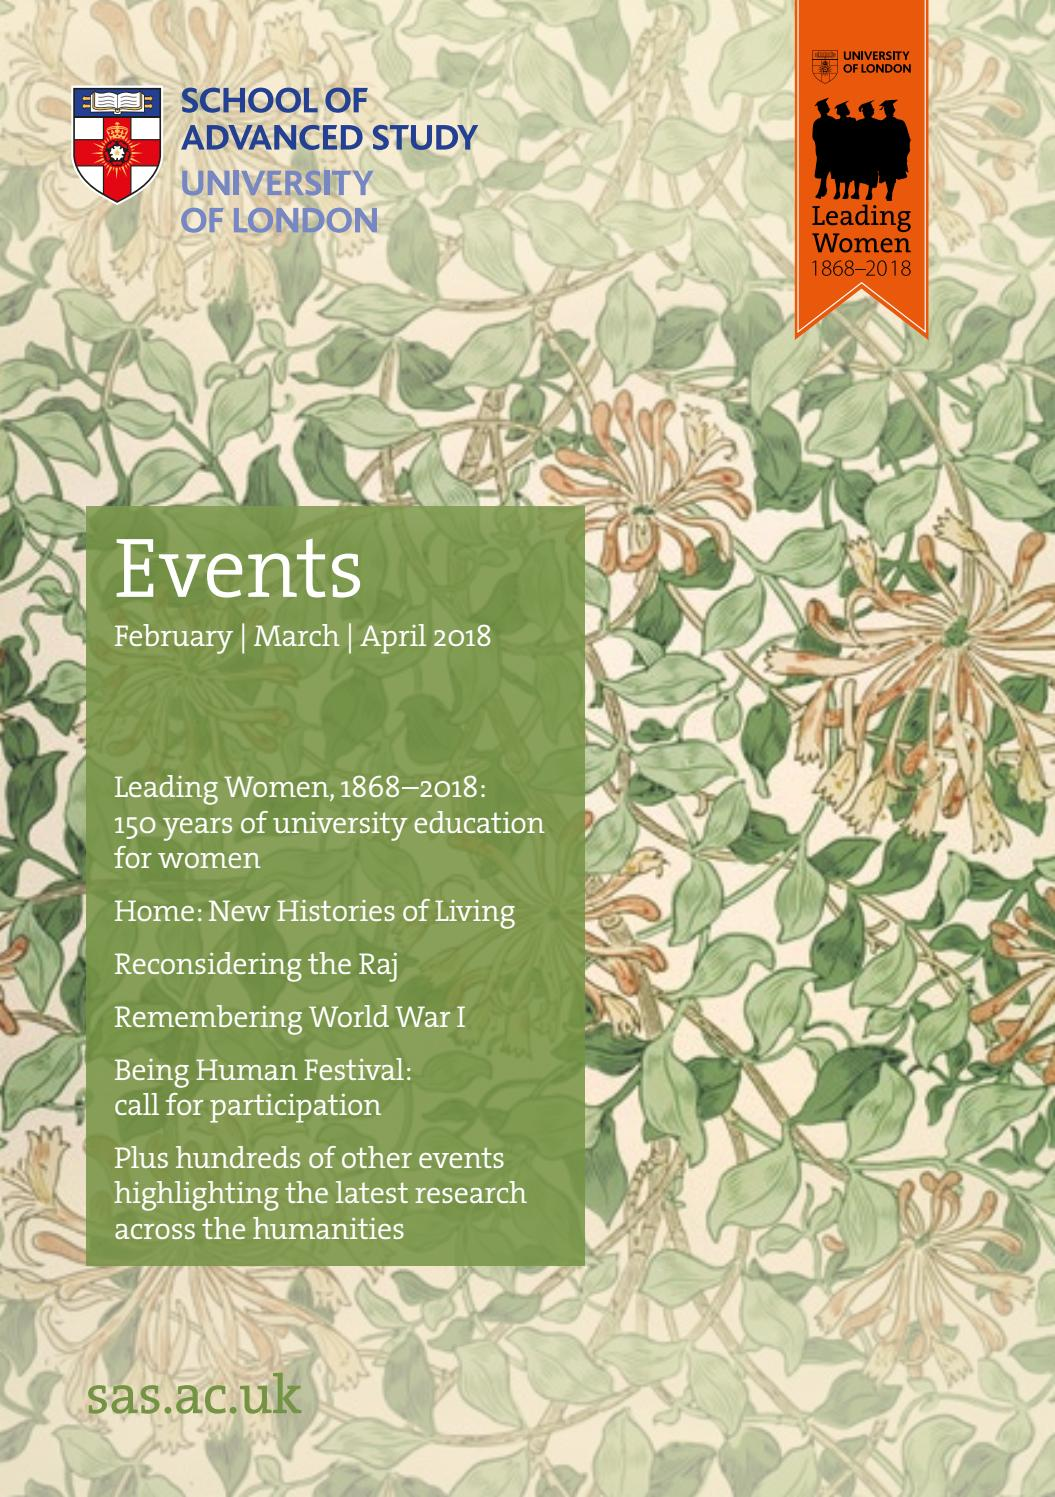 SAS Events Brochure February - April 2018 by School of